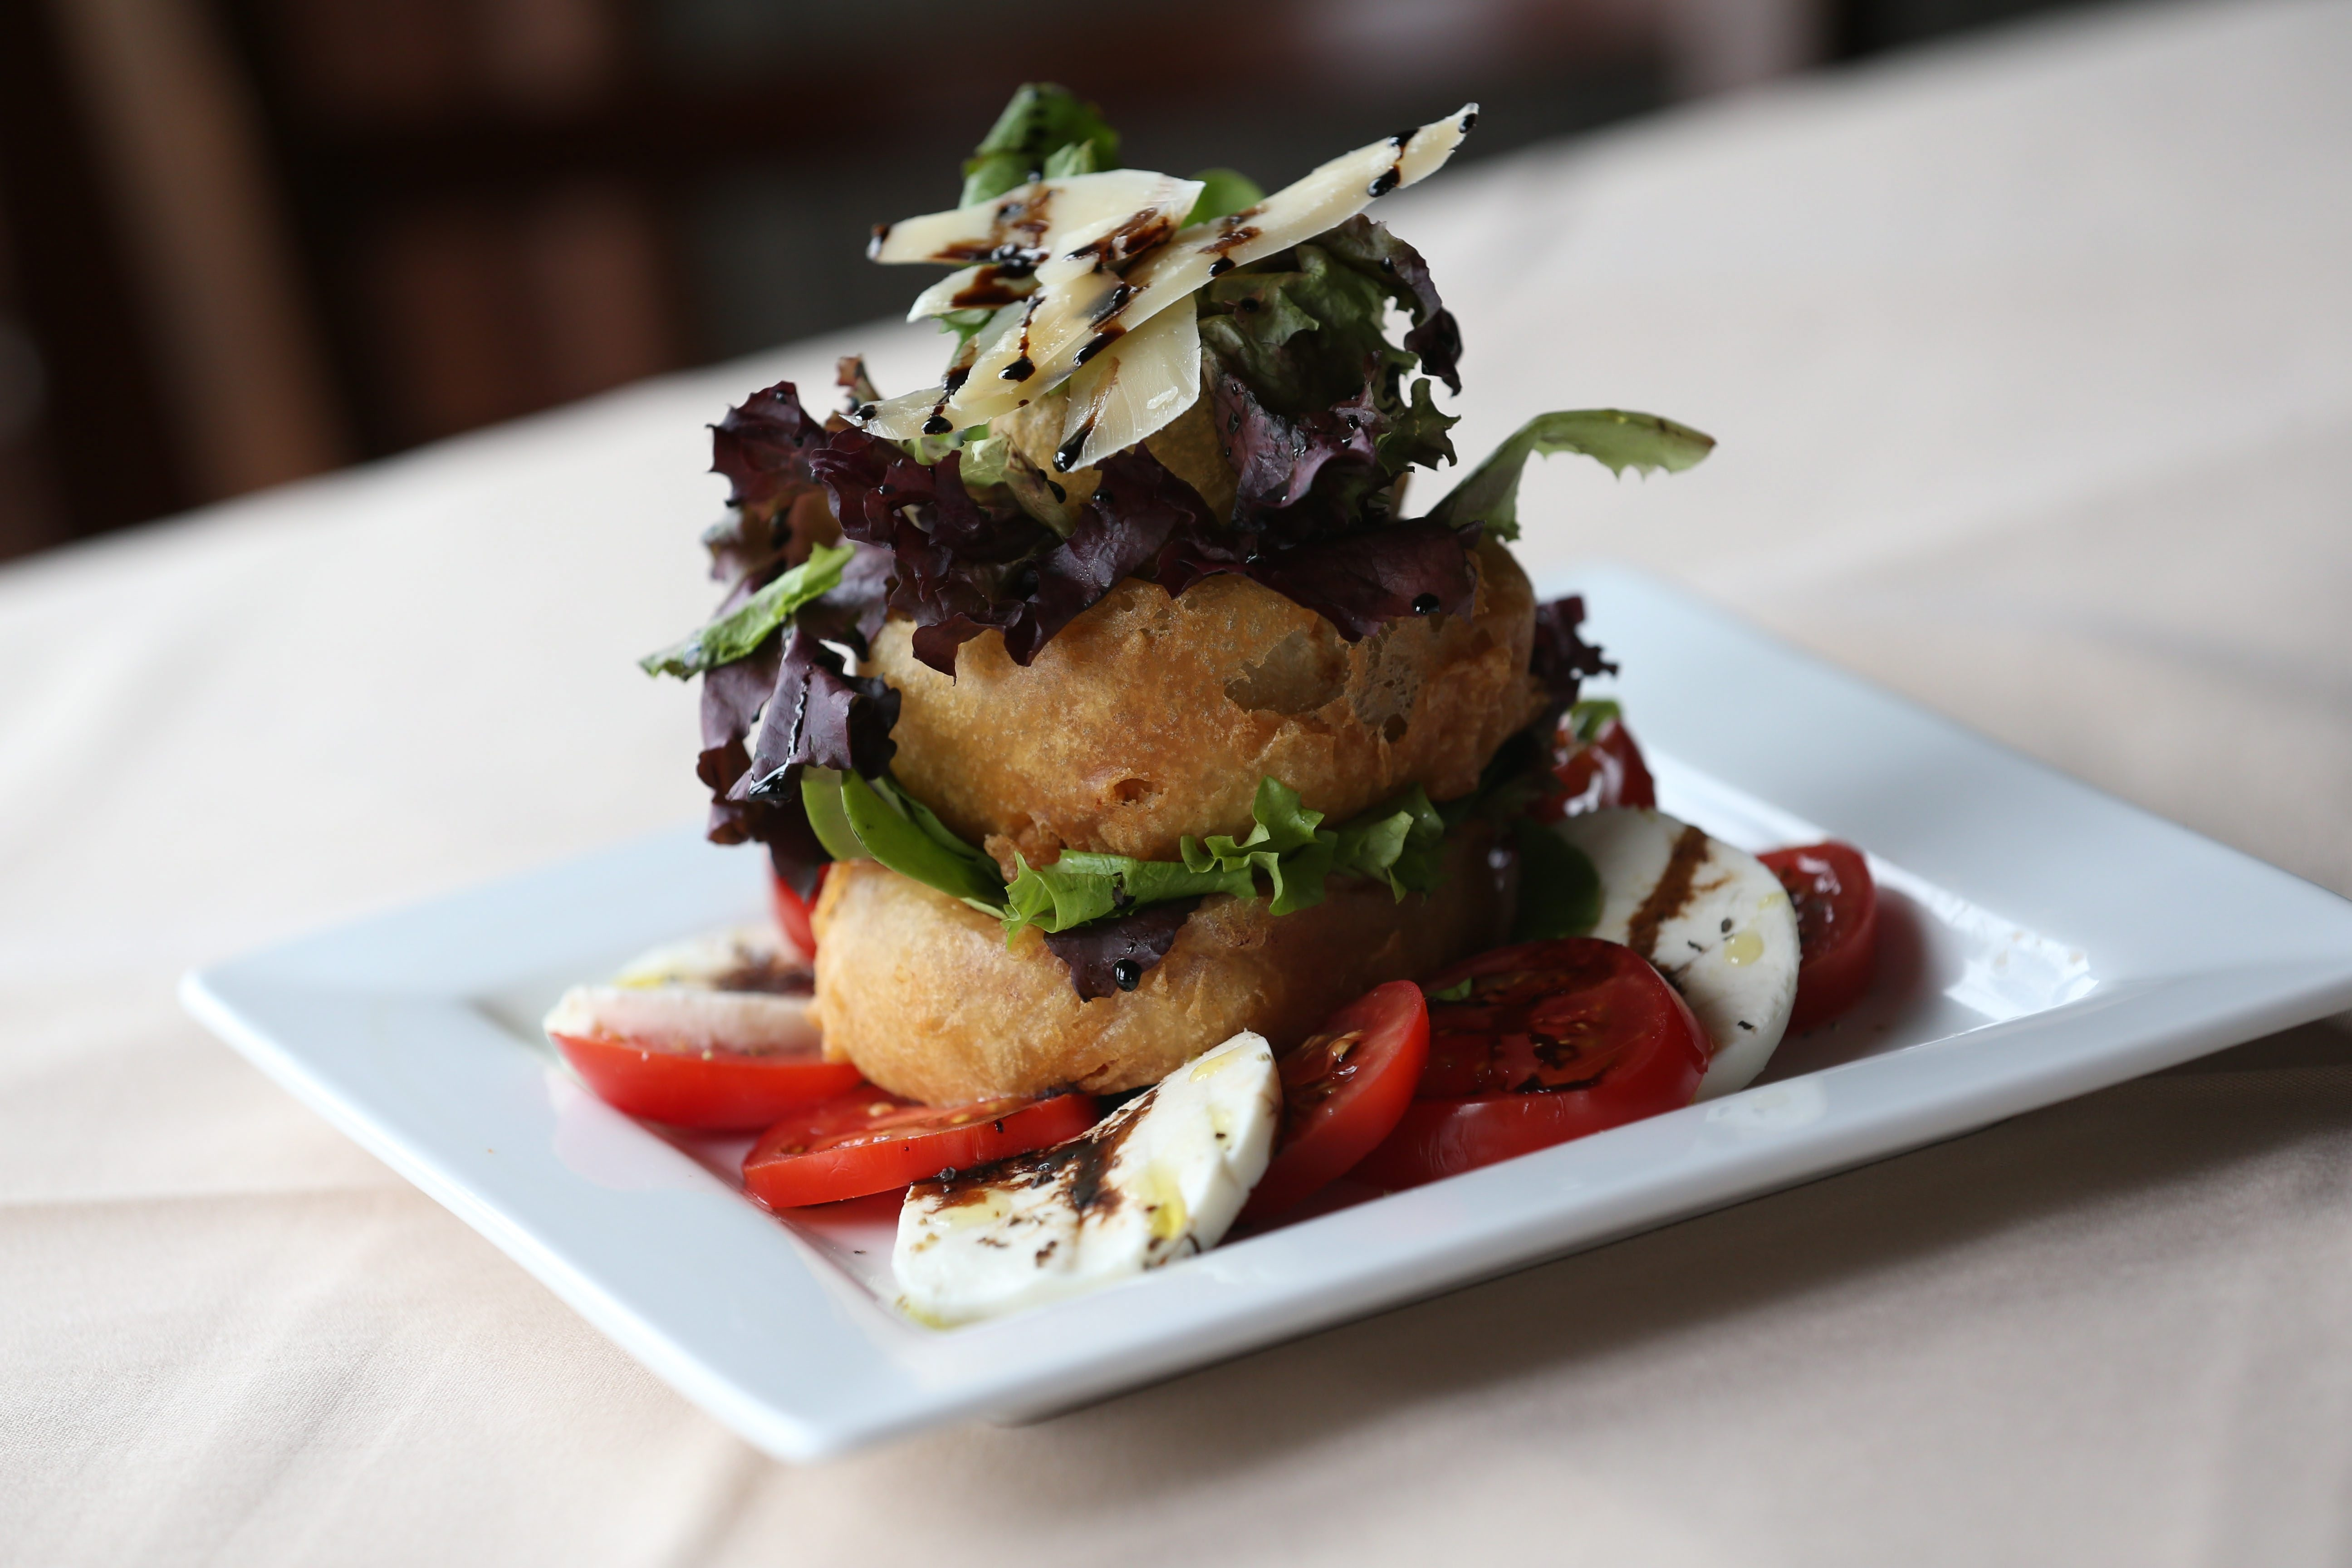 The Pepper and Onion Stack at Rick's on Main includes bell pepper, poblano pepper and sweet onion tempura fired and stack atop each other, then stuffed with lightly dressed greens and served over slice tomatoes and fresh mozzarella.